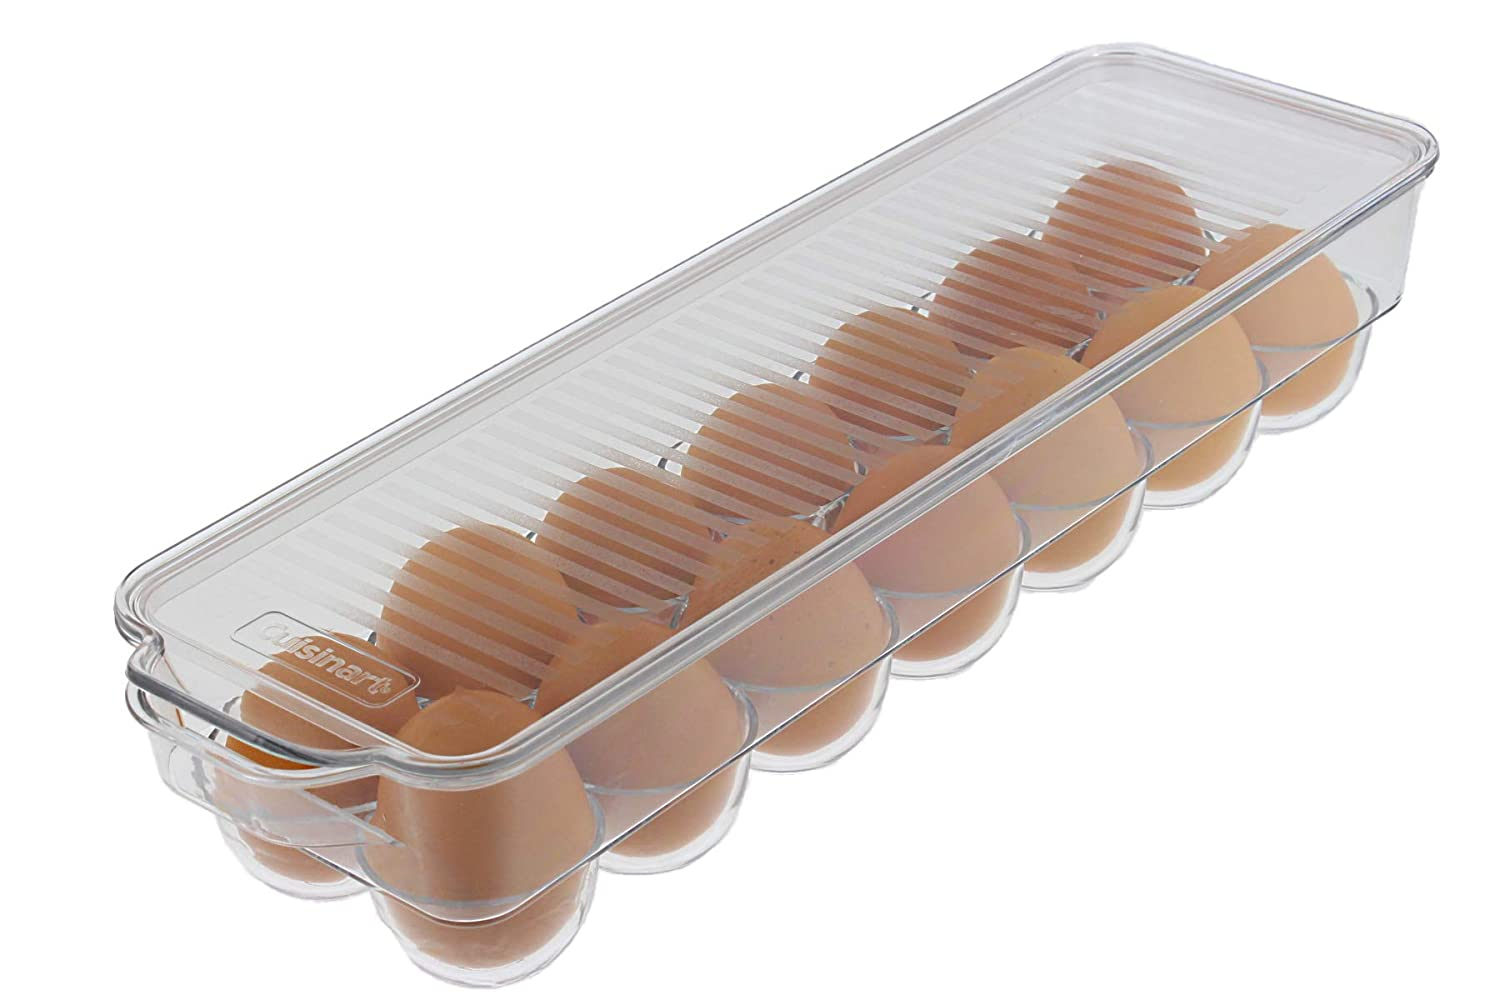 Cuisinart Egg Holder with Lid and Handle, Holds 14 Eggs – This Egg Container is a Must-Have Space Saver for Your Refrigerator – See-Through, Stackable, BPA Free – Measures 14.5 x 4.5 x 3